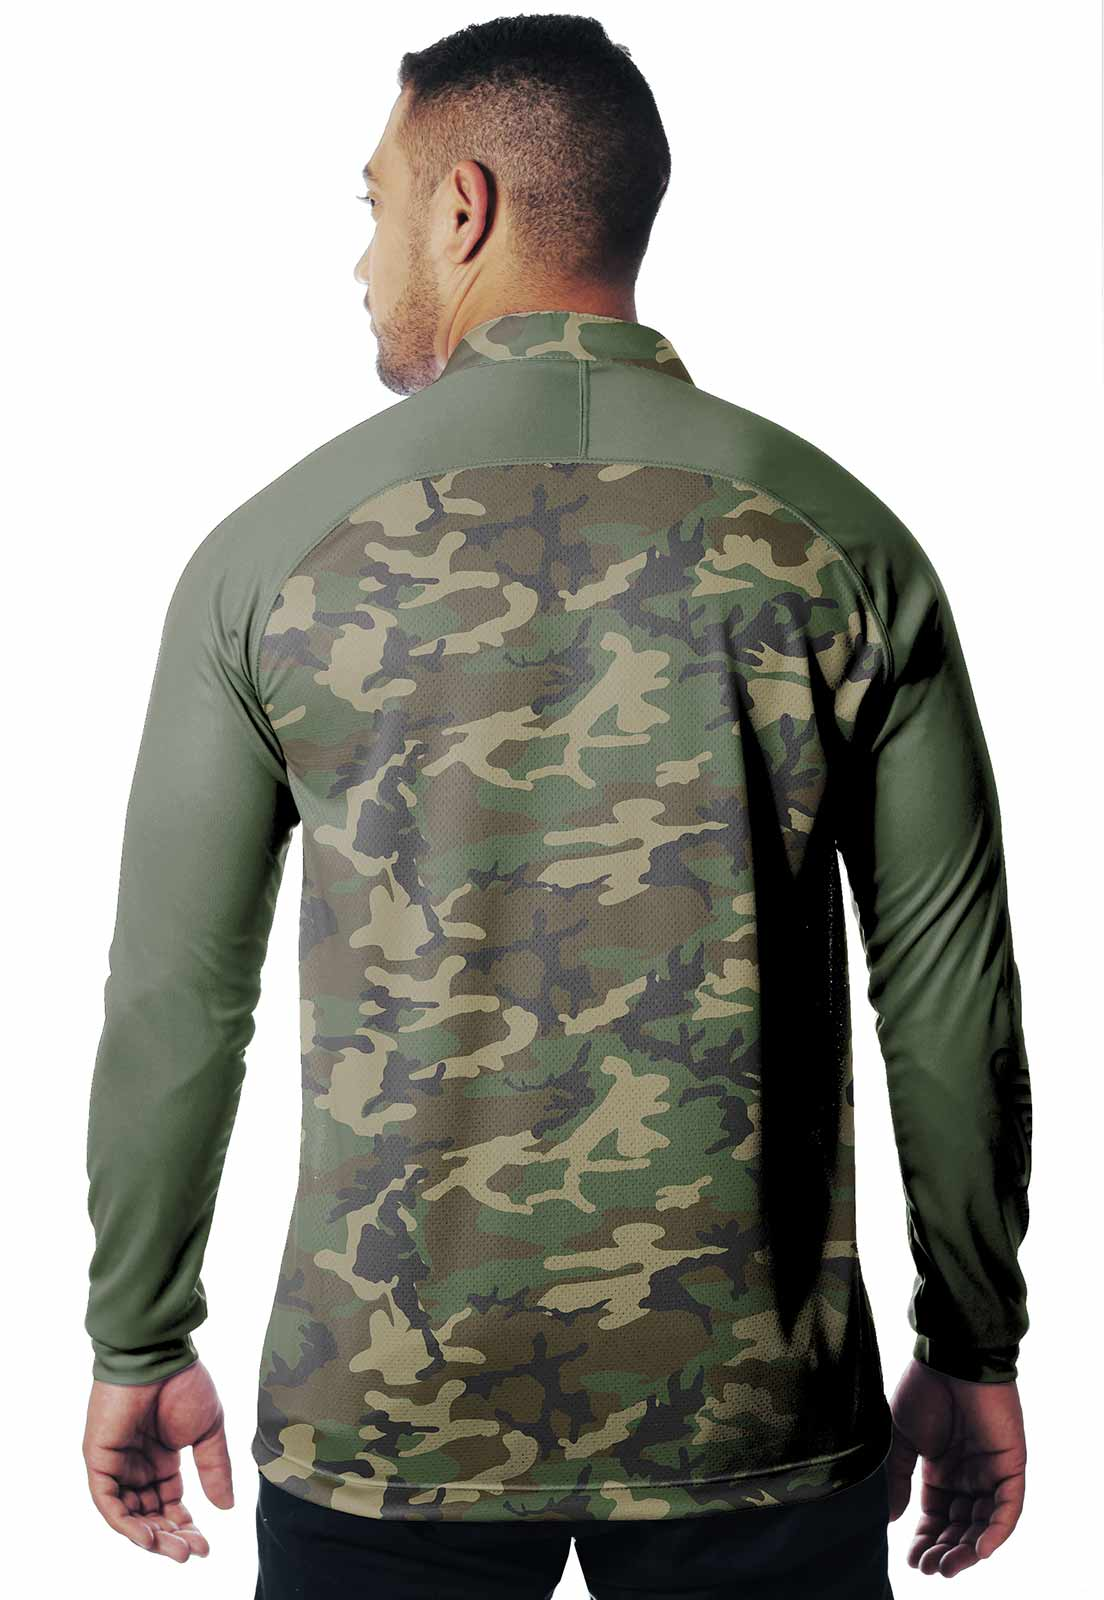 CAMISA DE PESCA FISH PRO 17 MASCULINA + BANDANA GRÁTIS  - REAL HUNTER OUTDOORS